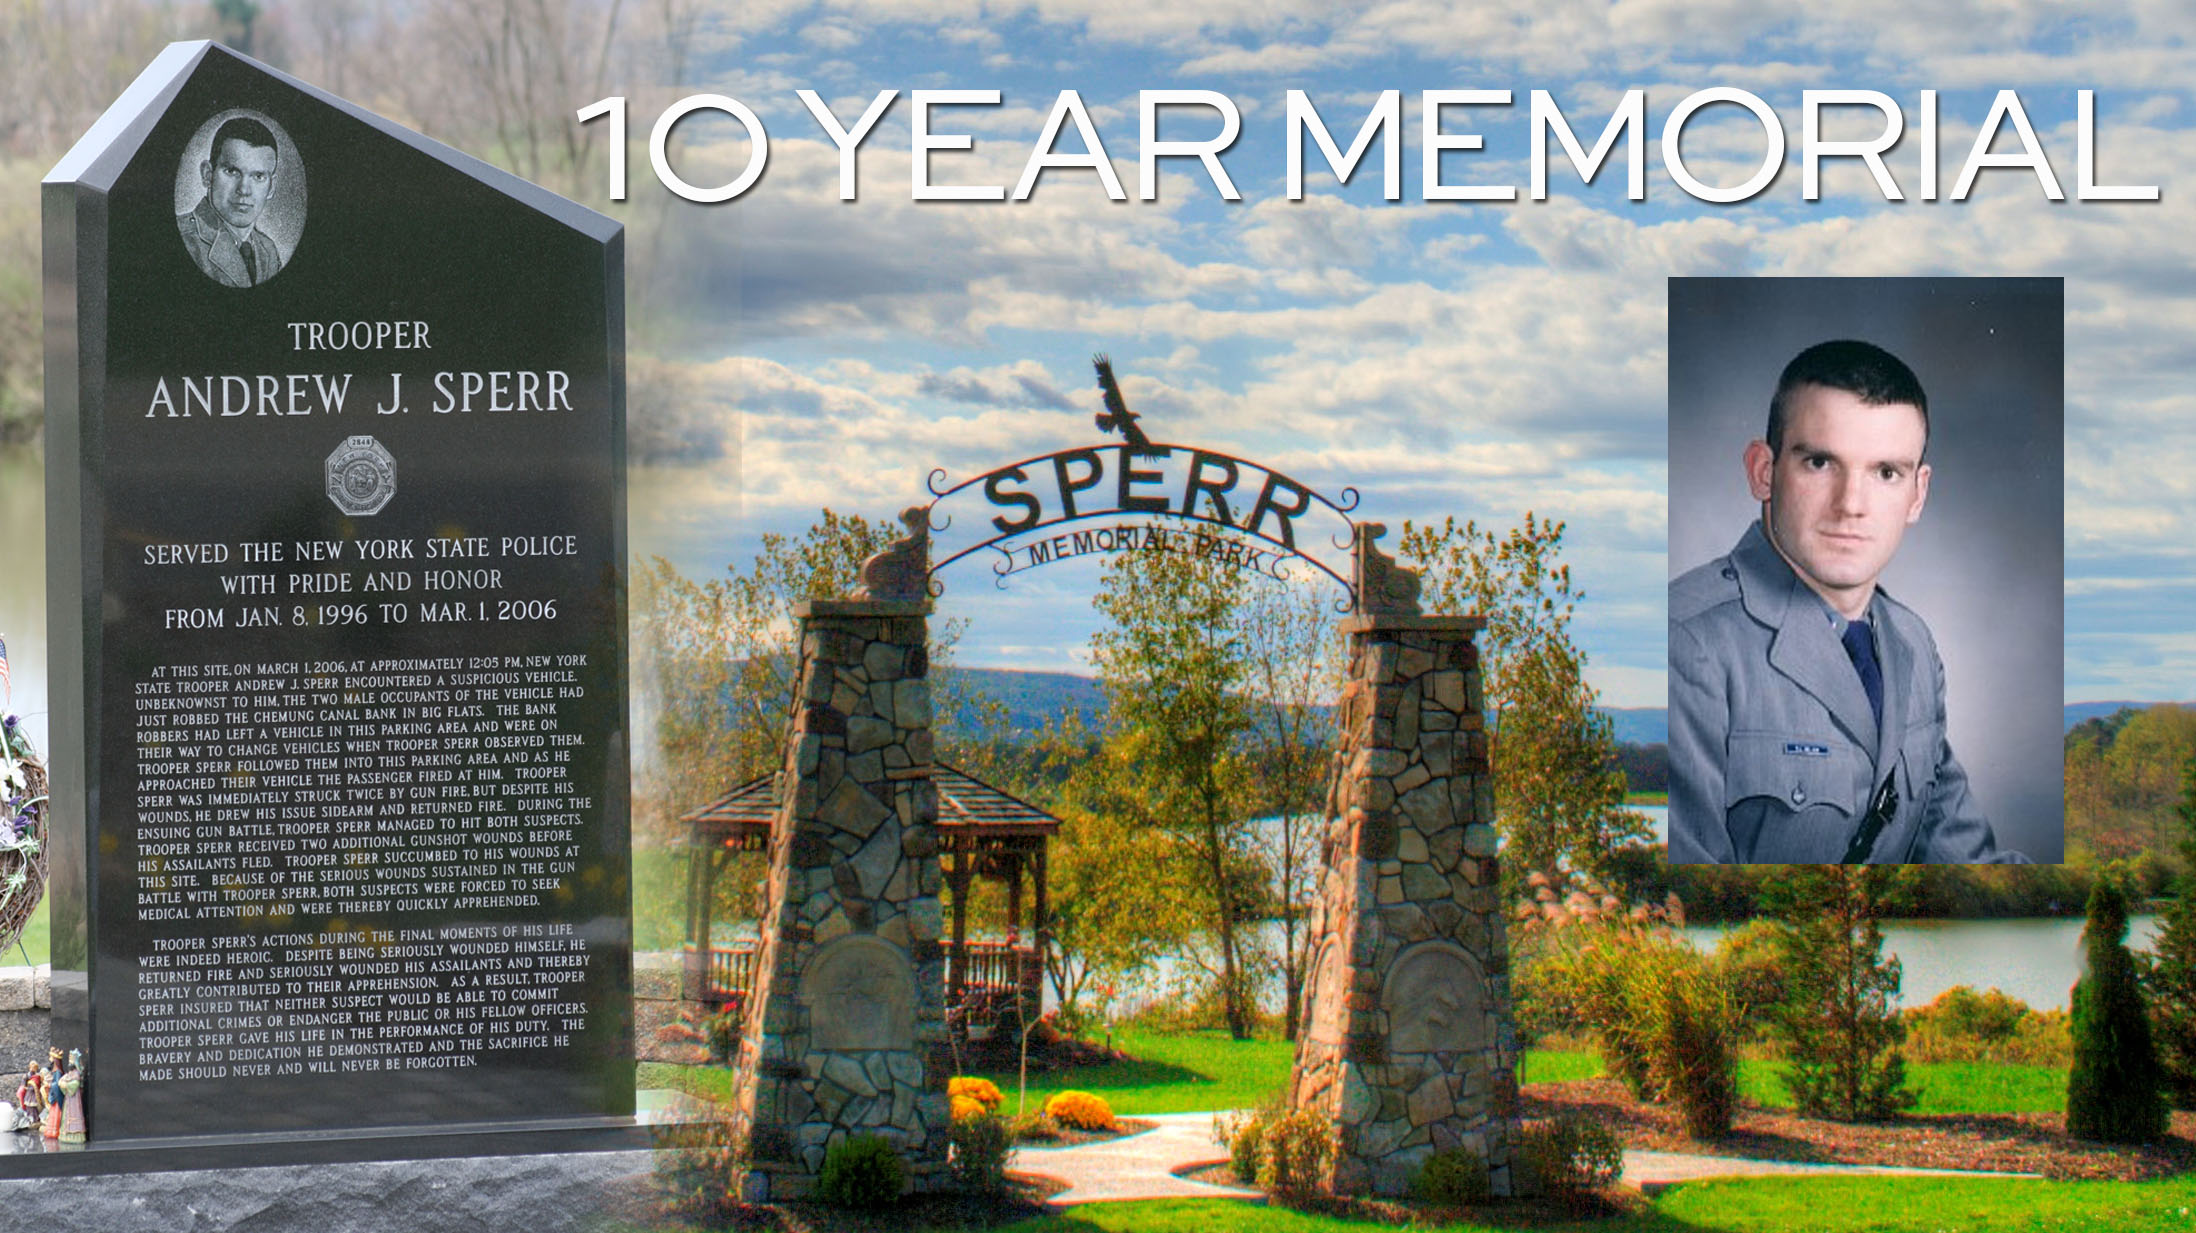 Sperr 10 Year Memorial Web Story (2)_1456835177856.jpg